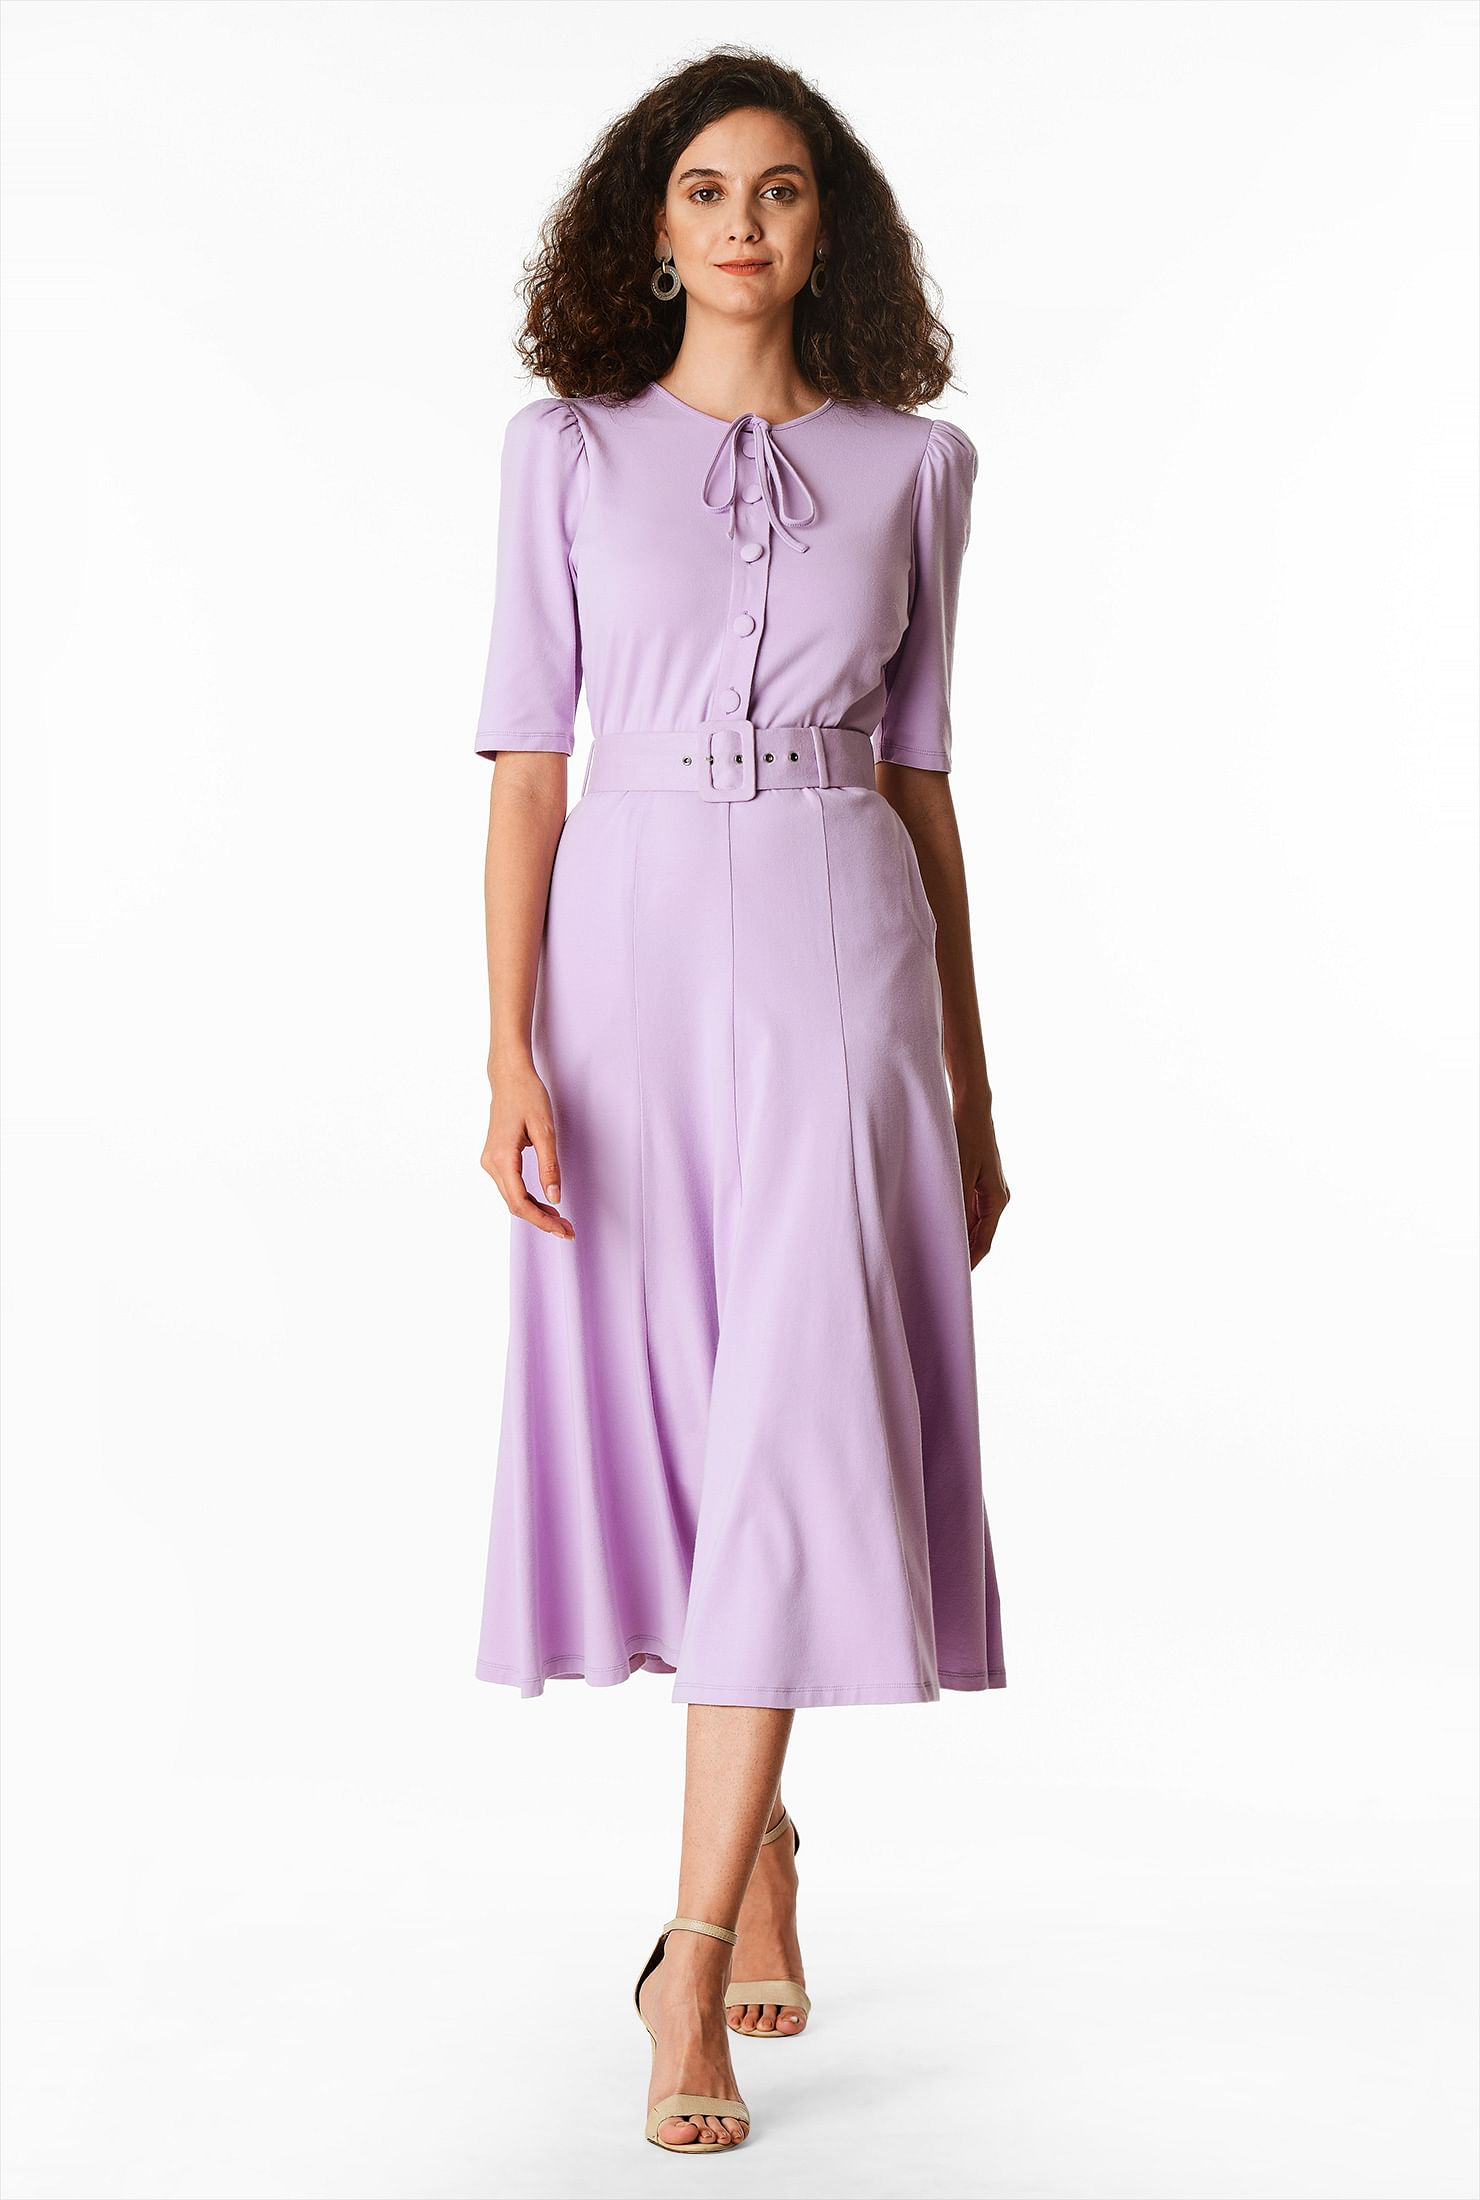 500 Vintage Style Dresses for Sale | Vintage Inspired Dresses Belted cotton knit shirtdress $69.95 AT vintagedancer.com